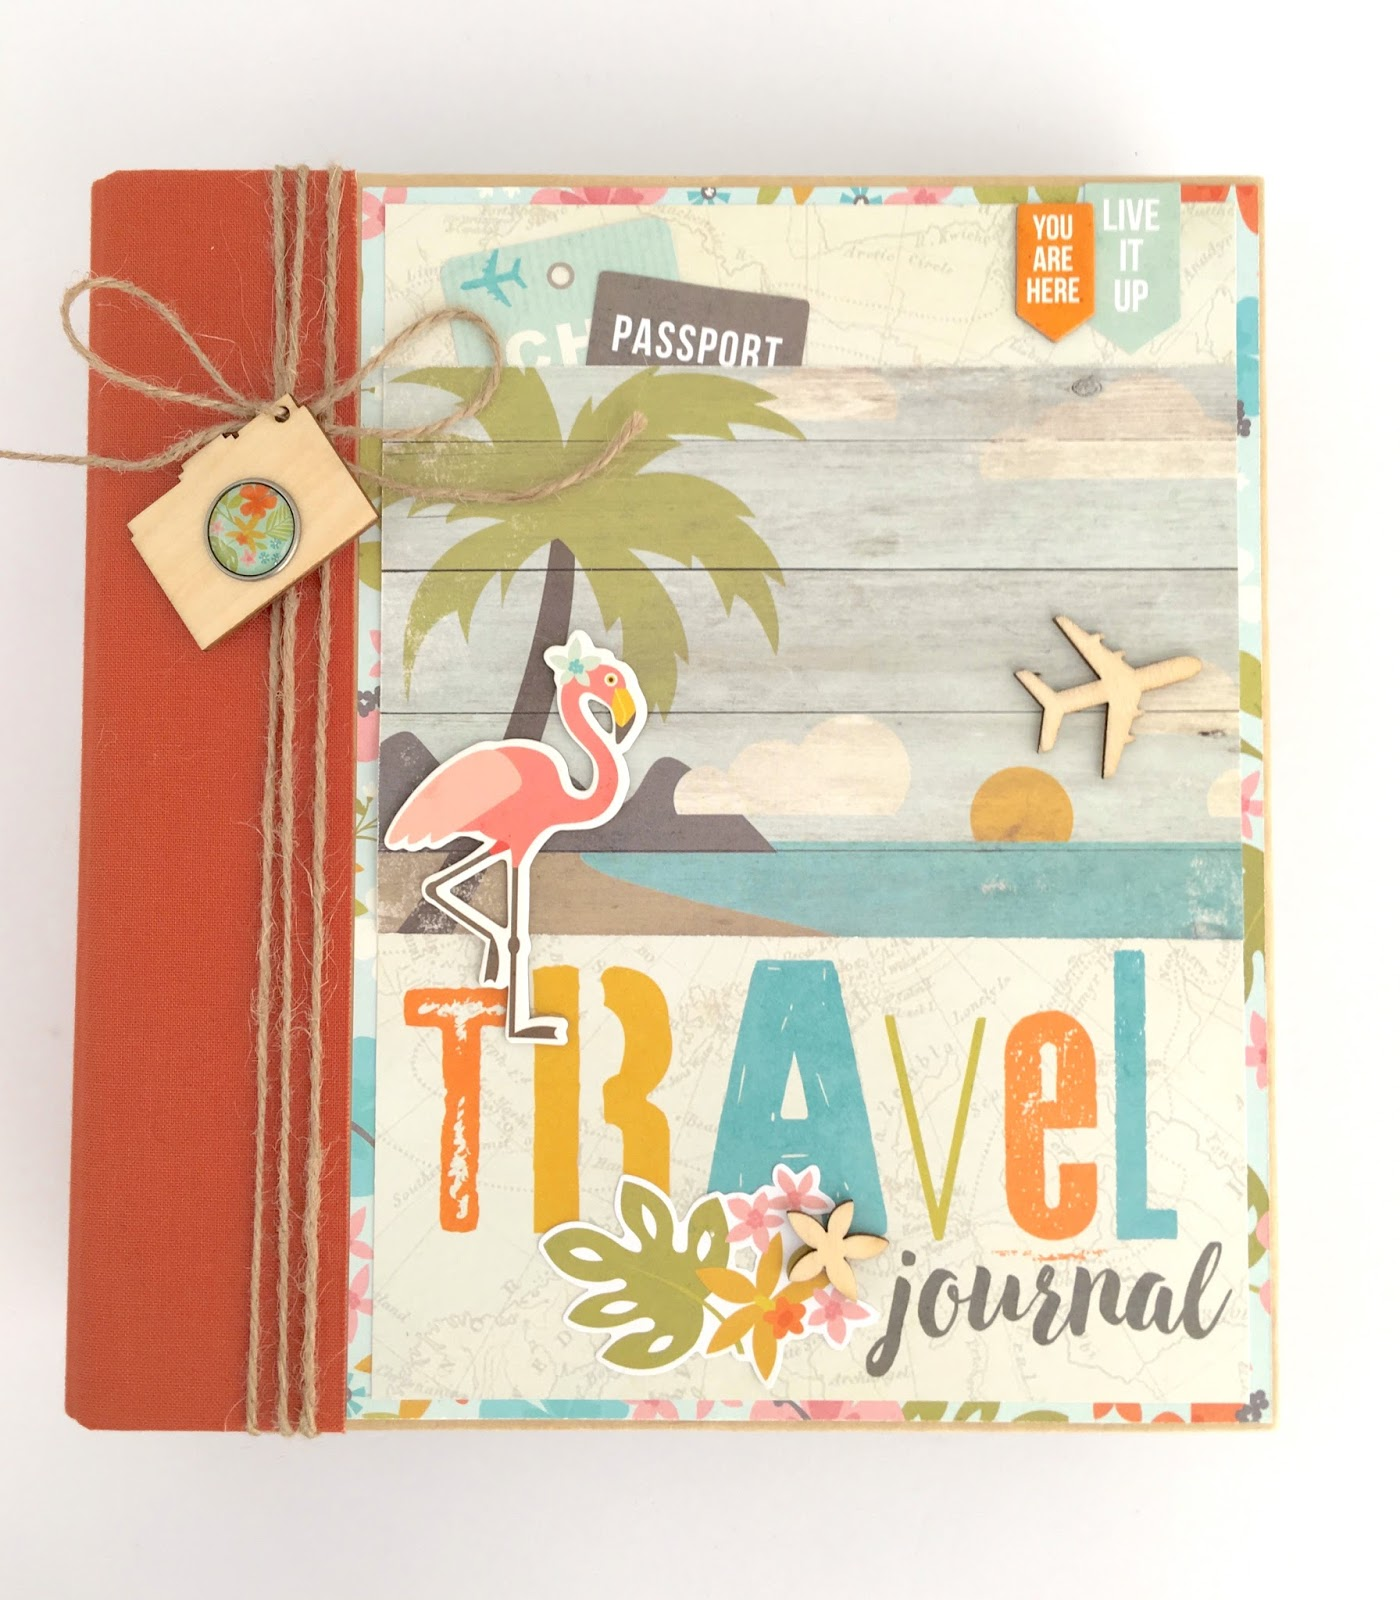 How to make scrapbook simple - This Album Is Available As A Diy Kit Or Pre Made And Will Make A Wonderful Keepsake For Photos Of Your Tropical Vacation Photos The Album Measures Slightly